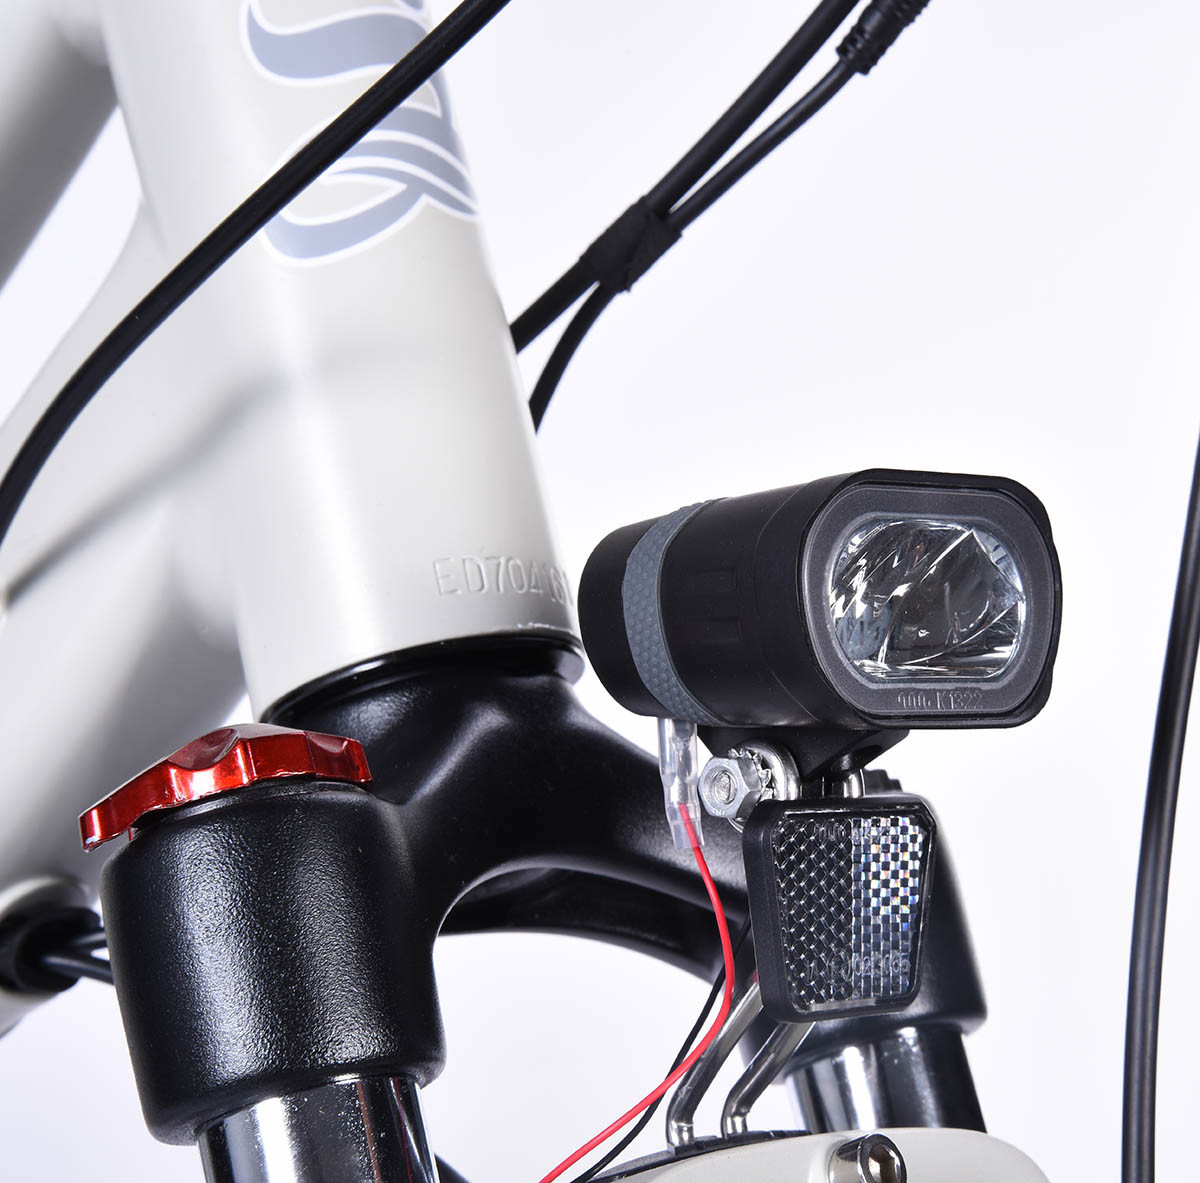 Brushless Motor 700c Newest Electric Bicycle with Certificate